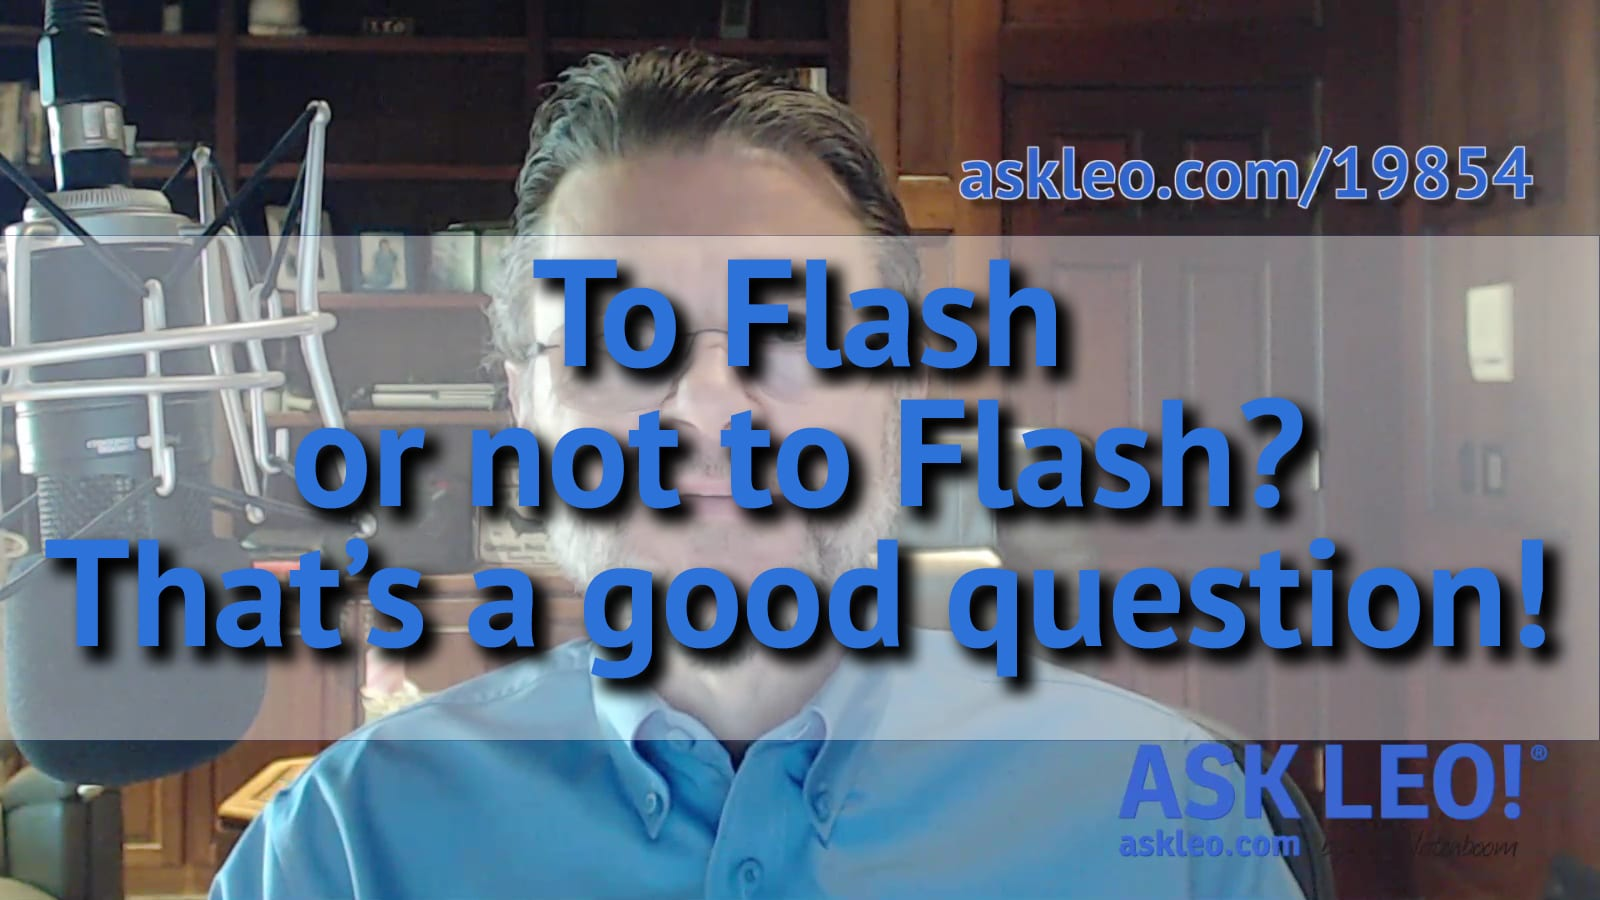 To Flash or not to Flash?